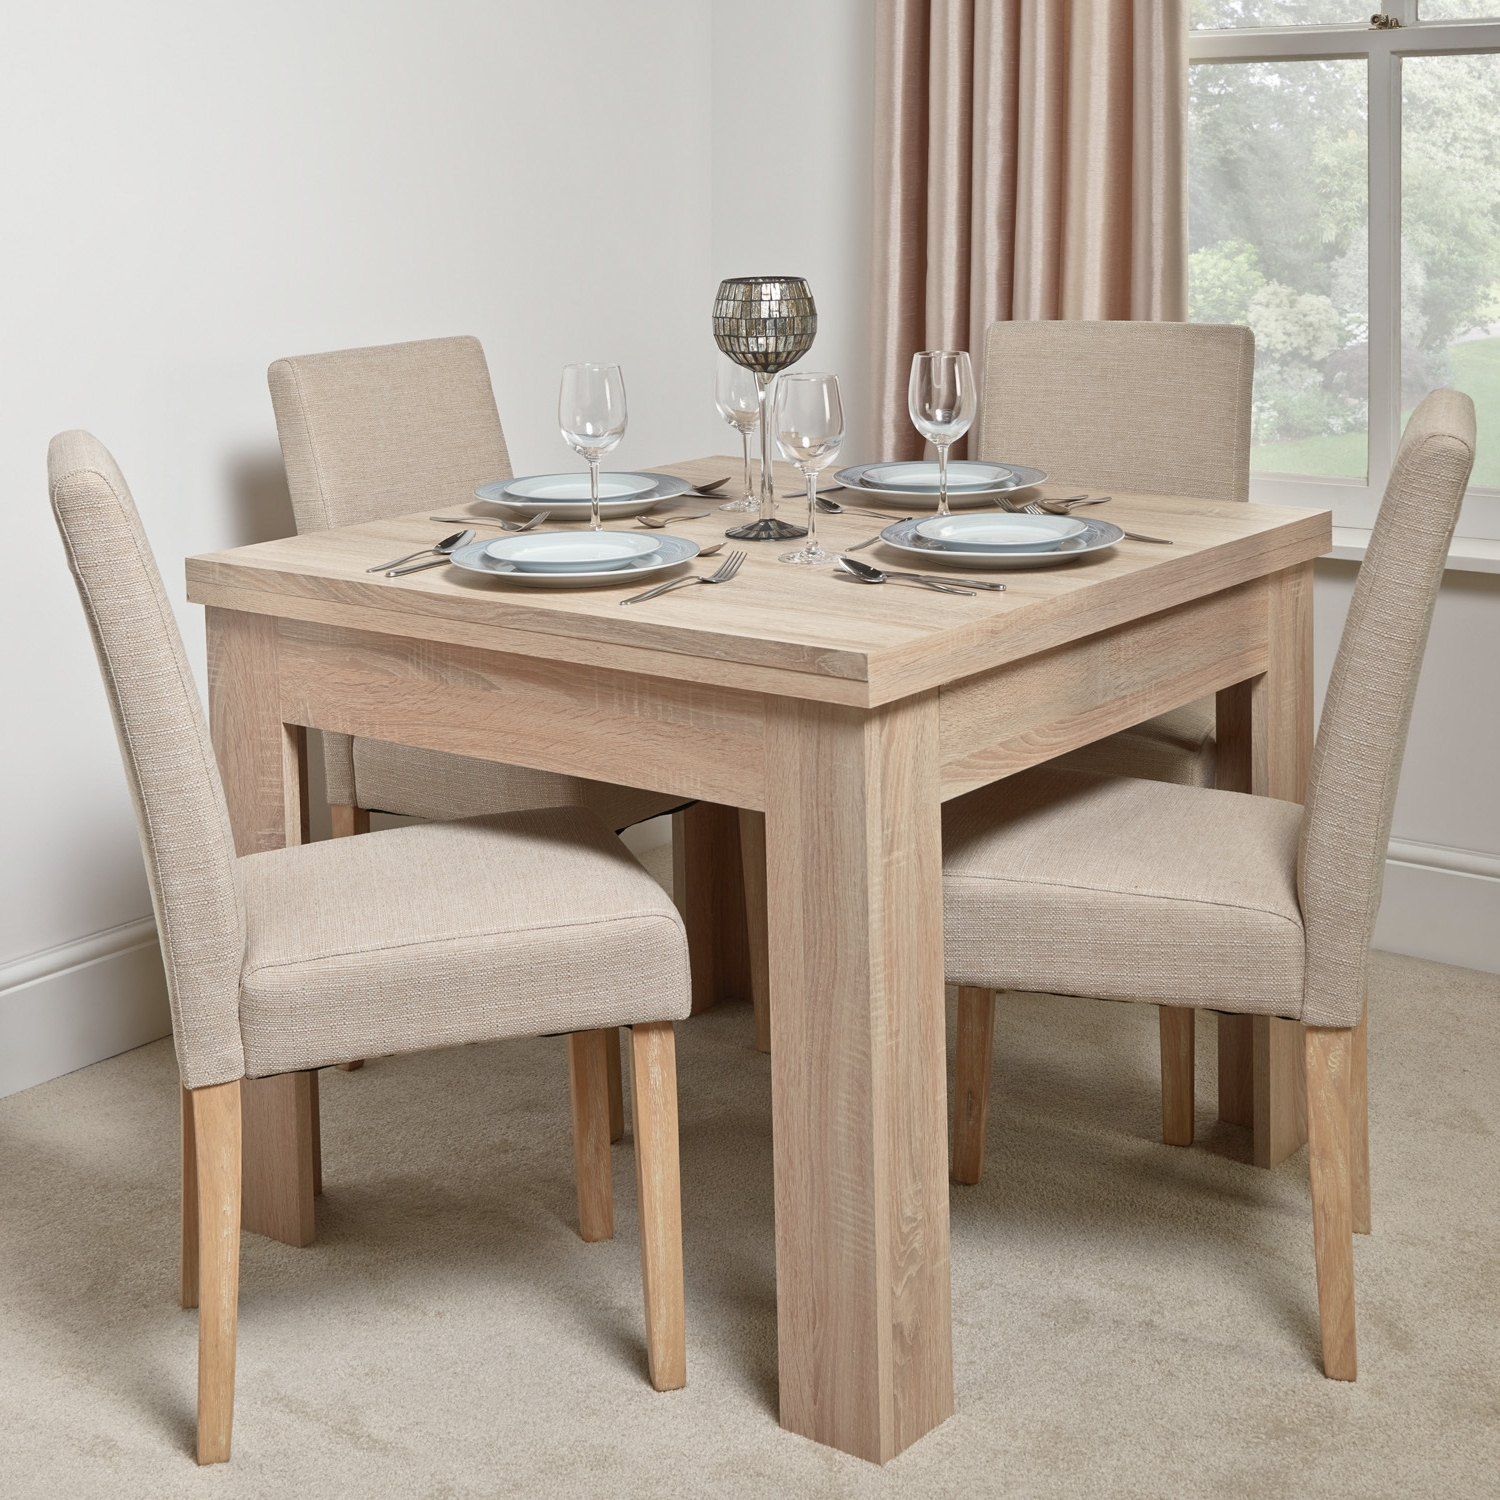 Calpe Flip Extending Dining Table With Regard To Popular Dining Extending Tables And Chairs (Gallery 4 of 25)